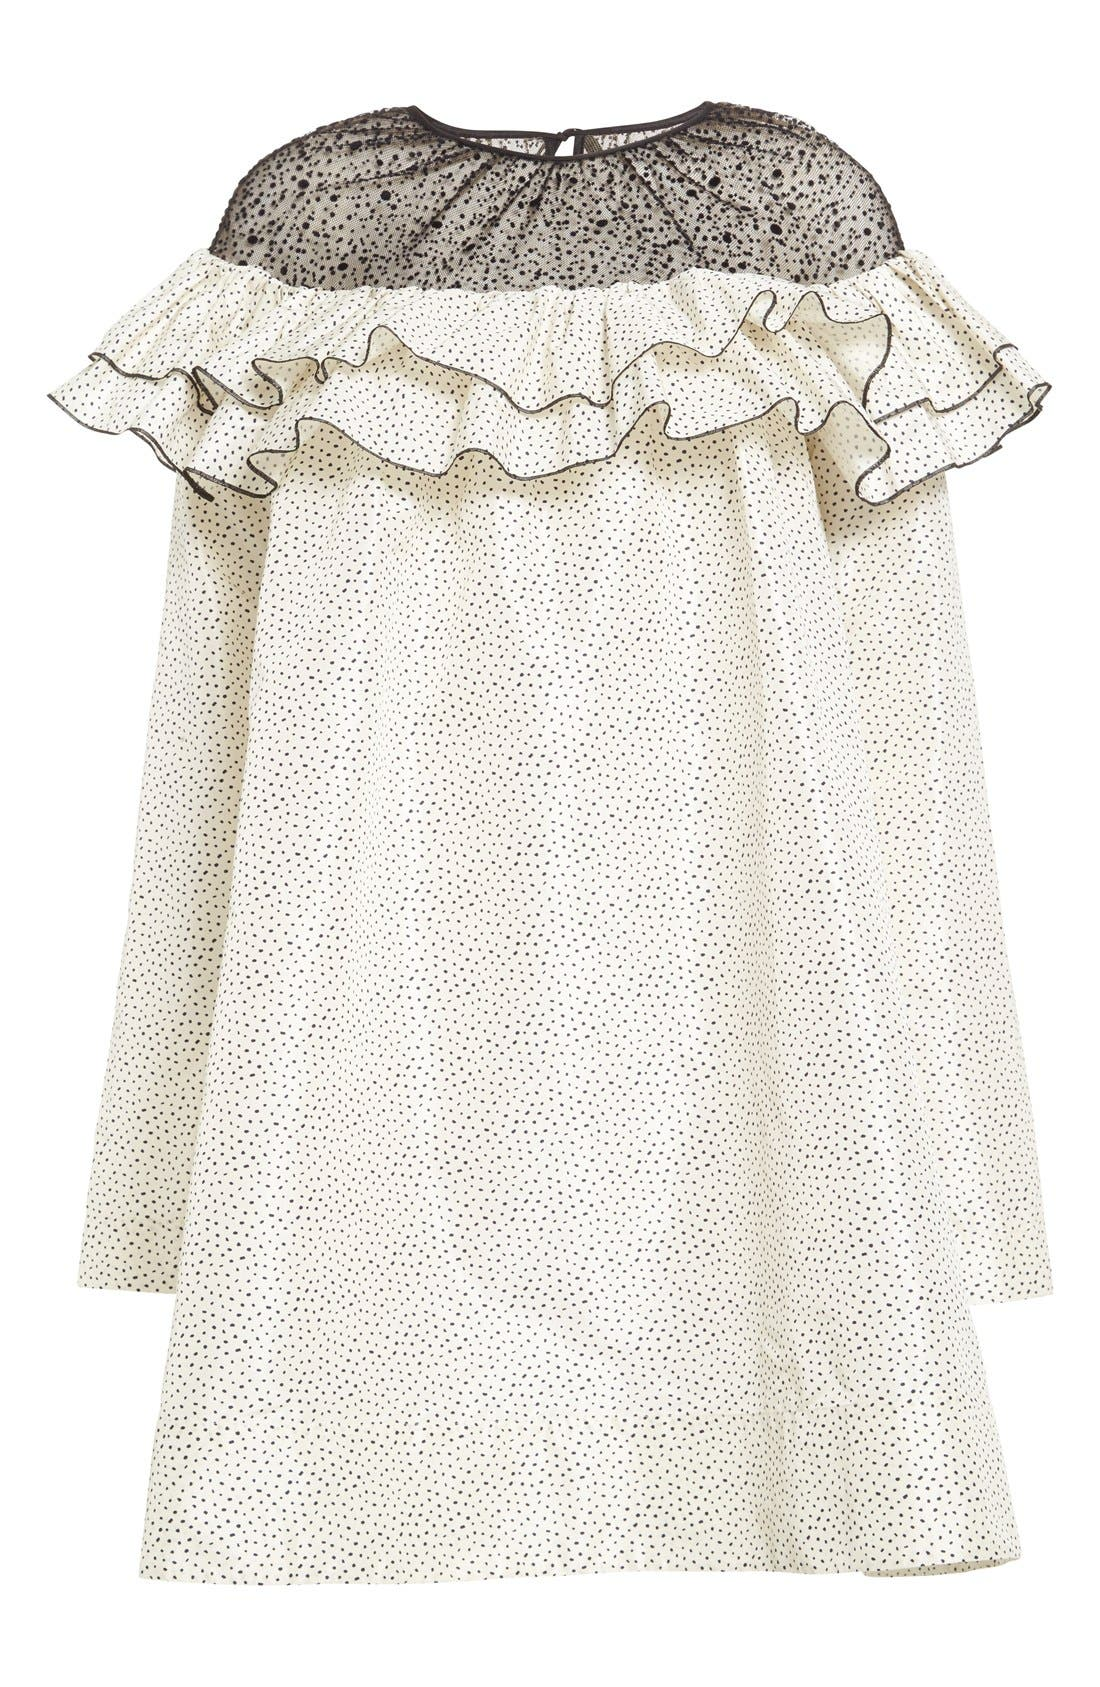 Alternate Image 4  - Isa Arfen Ruffle Illusion Yoke Shift Dress